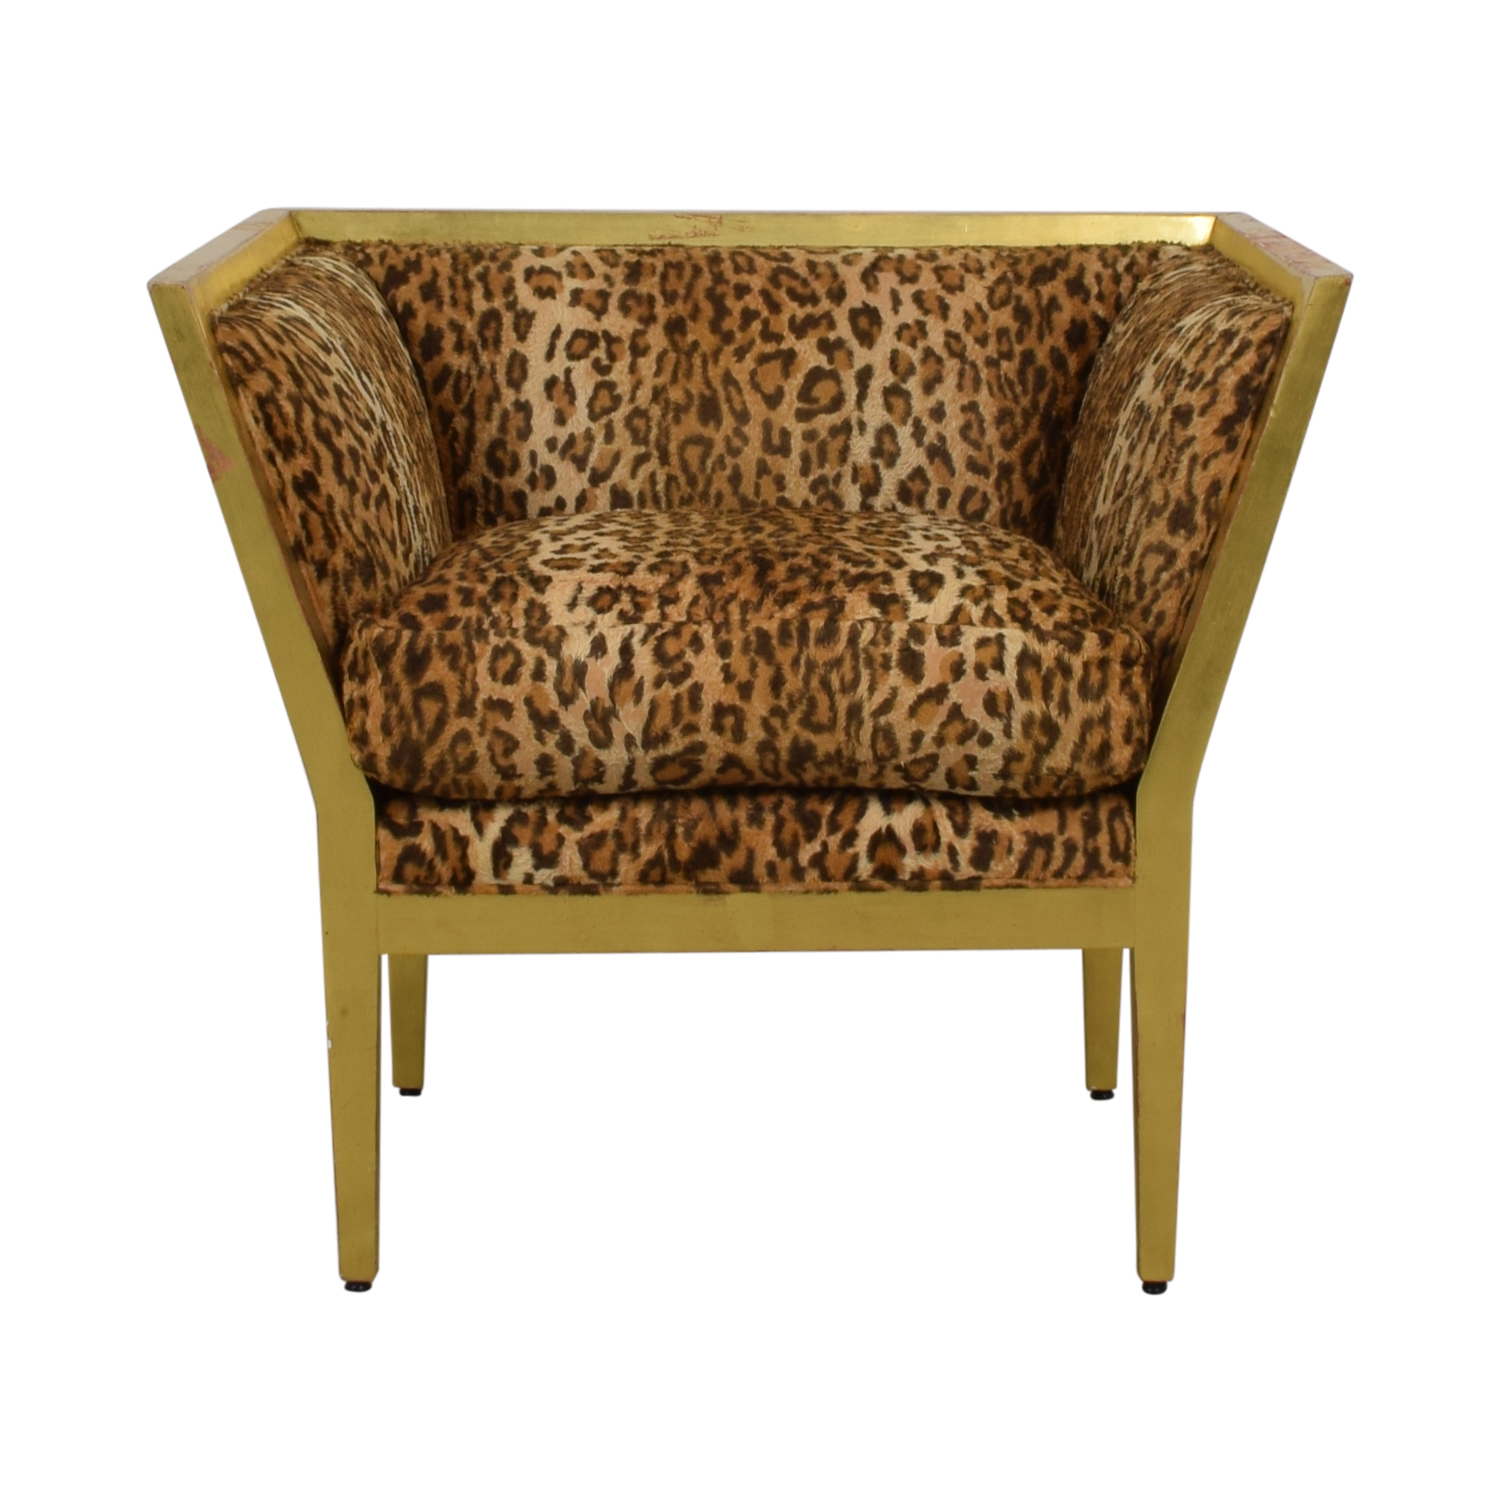 Furniture Masters Furniture Masters Leopard Distressed Accent Chair Accent Chairs